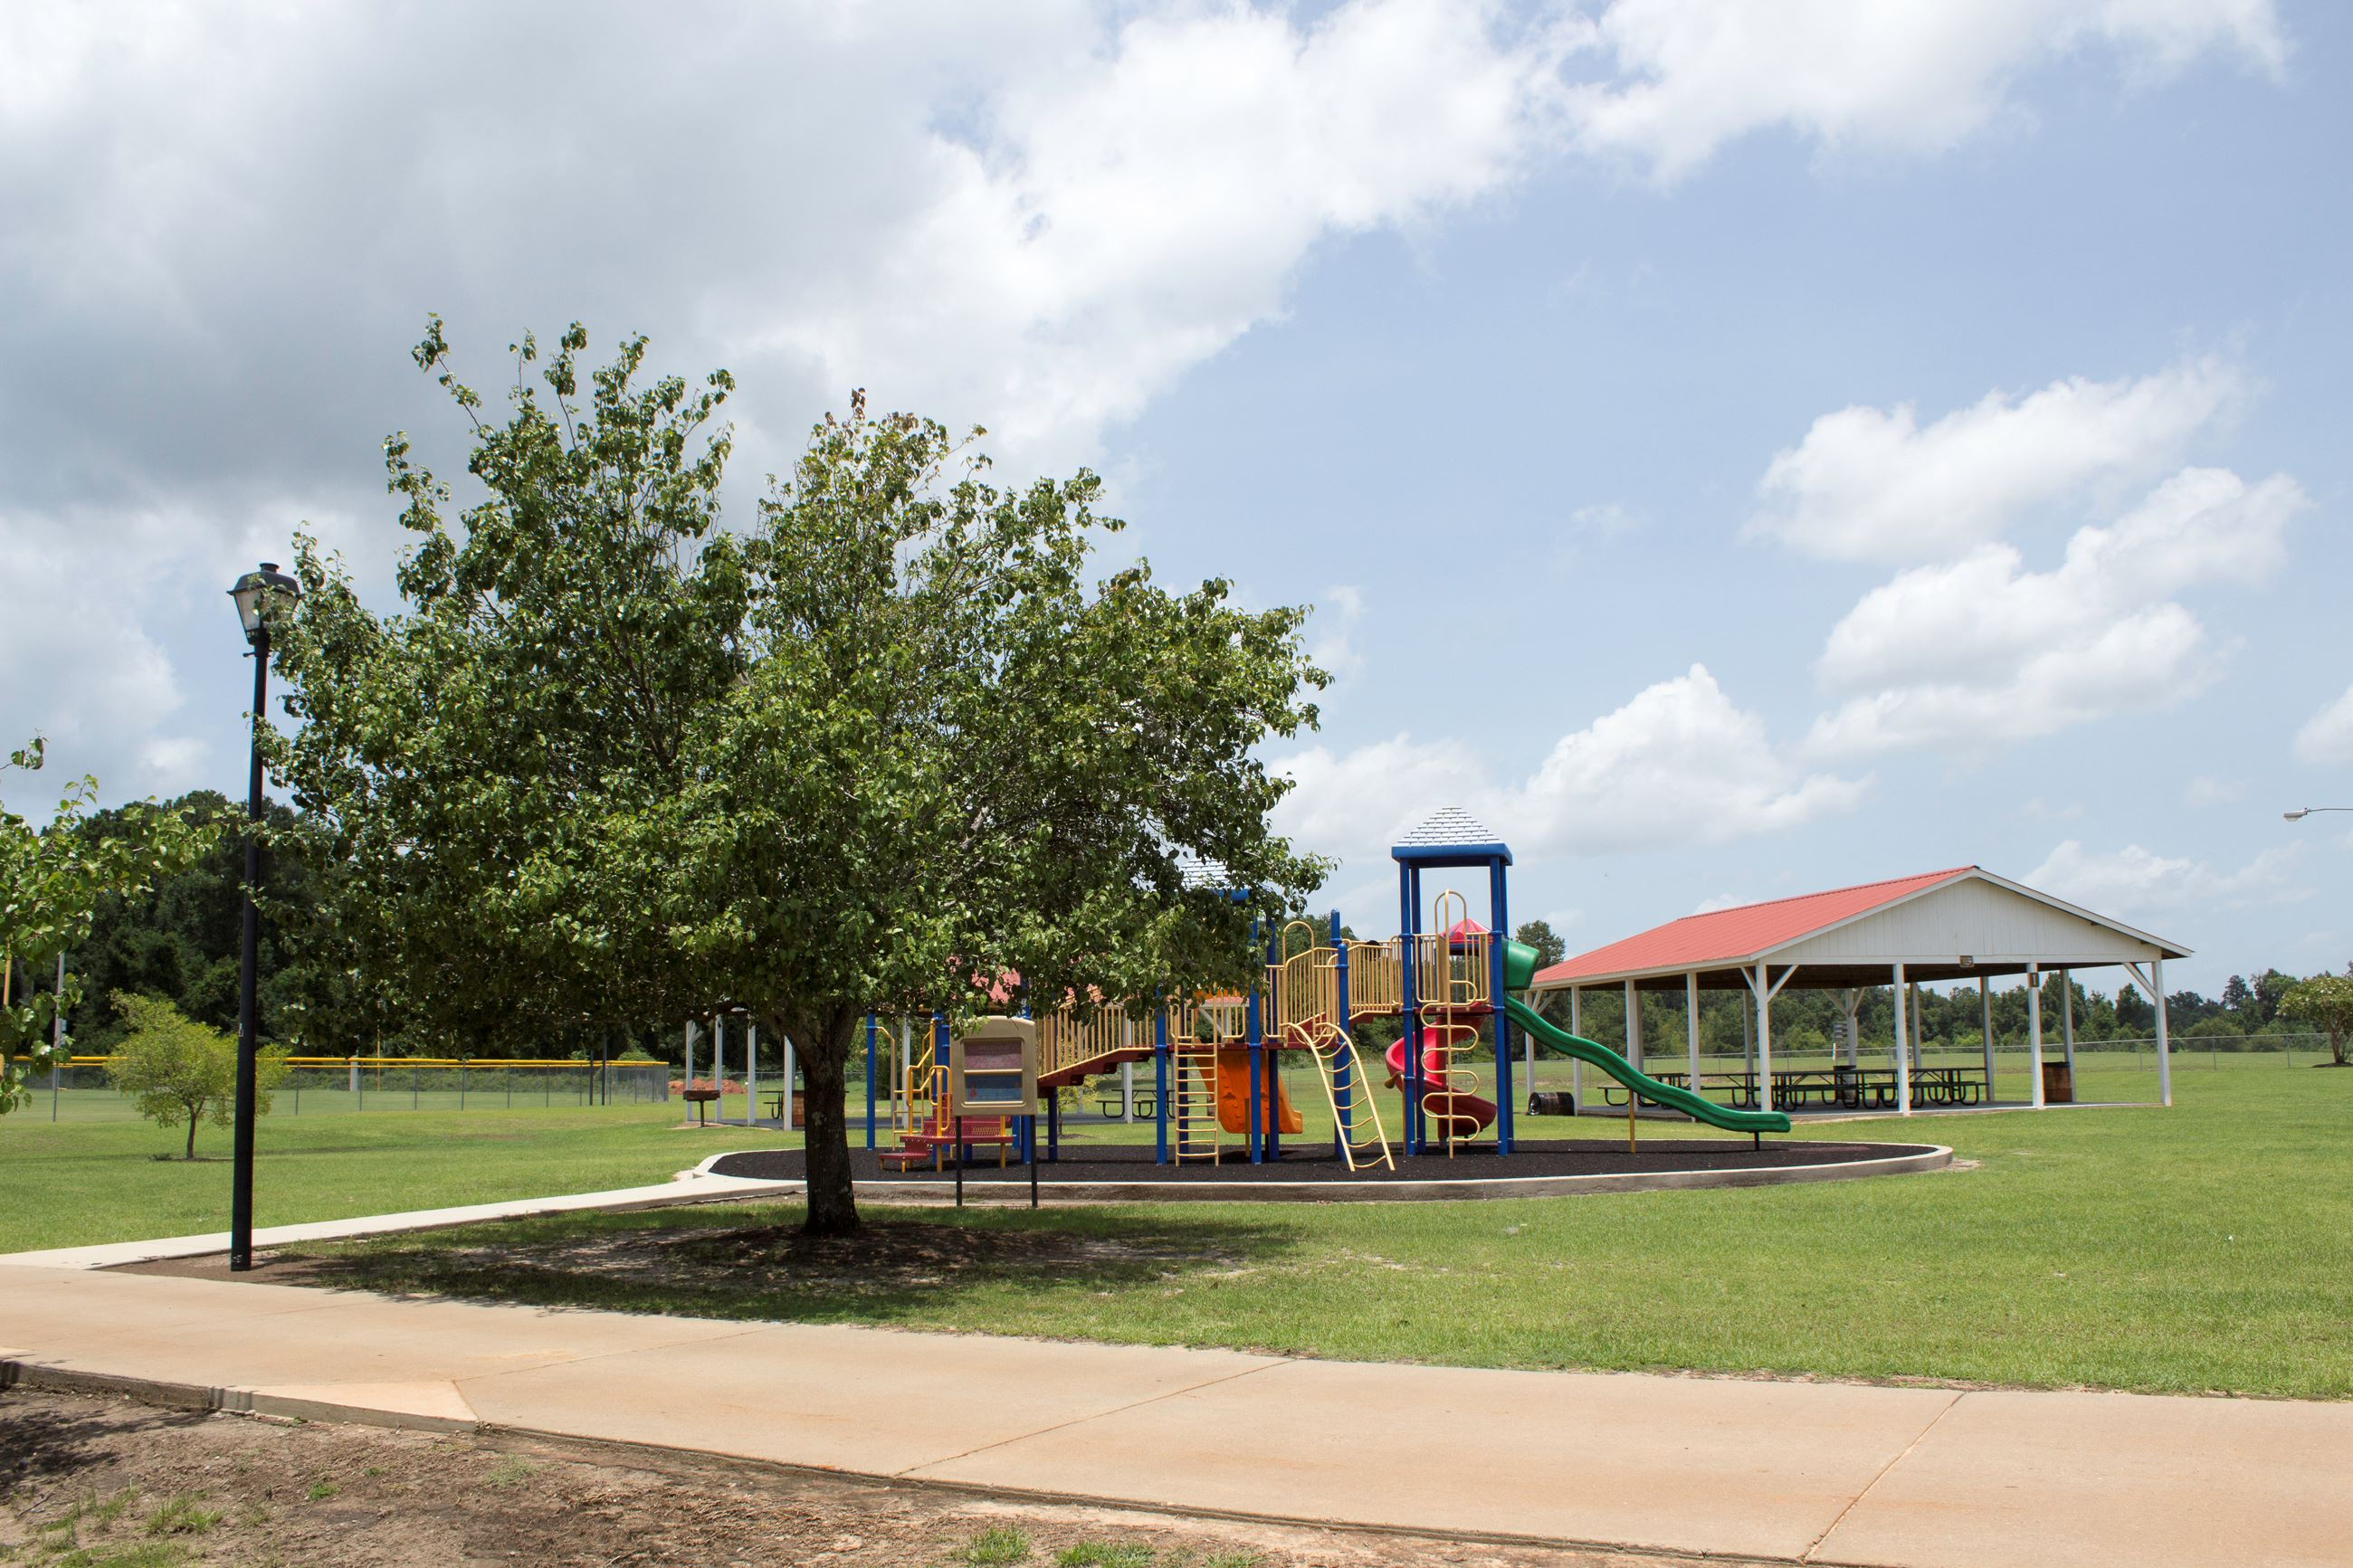 An image of a playground next to a tree in a large park.